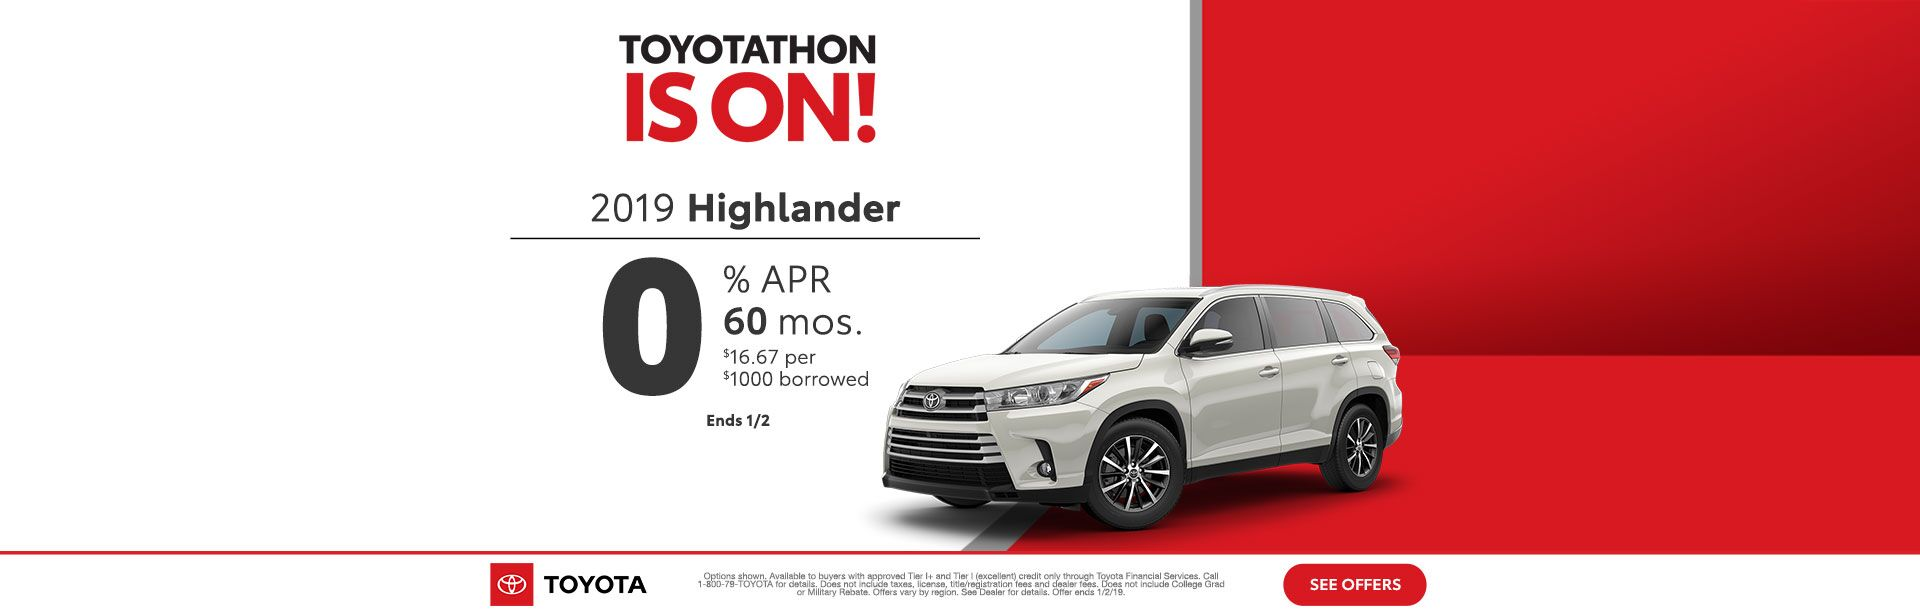 Toyotathon is on Highlander Dec 2018